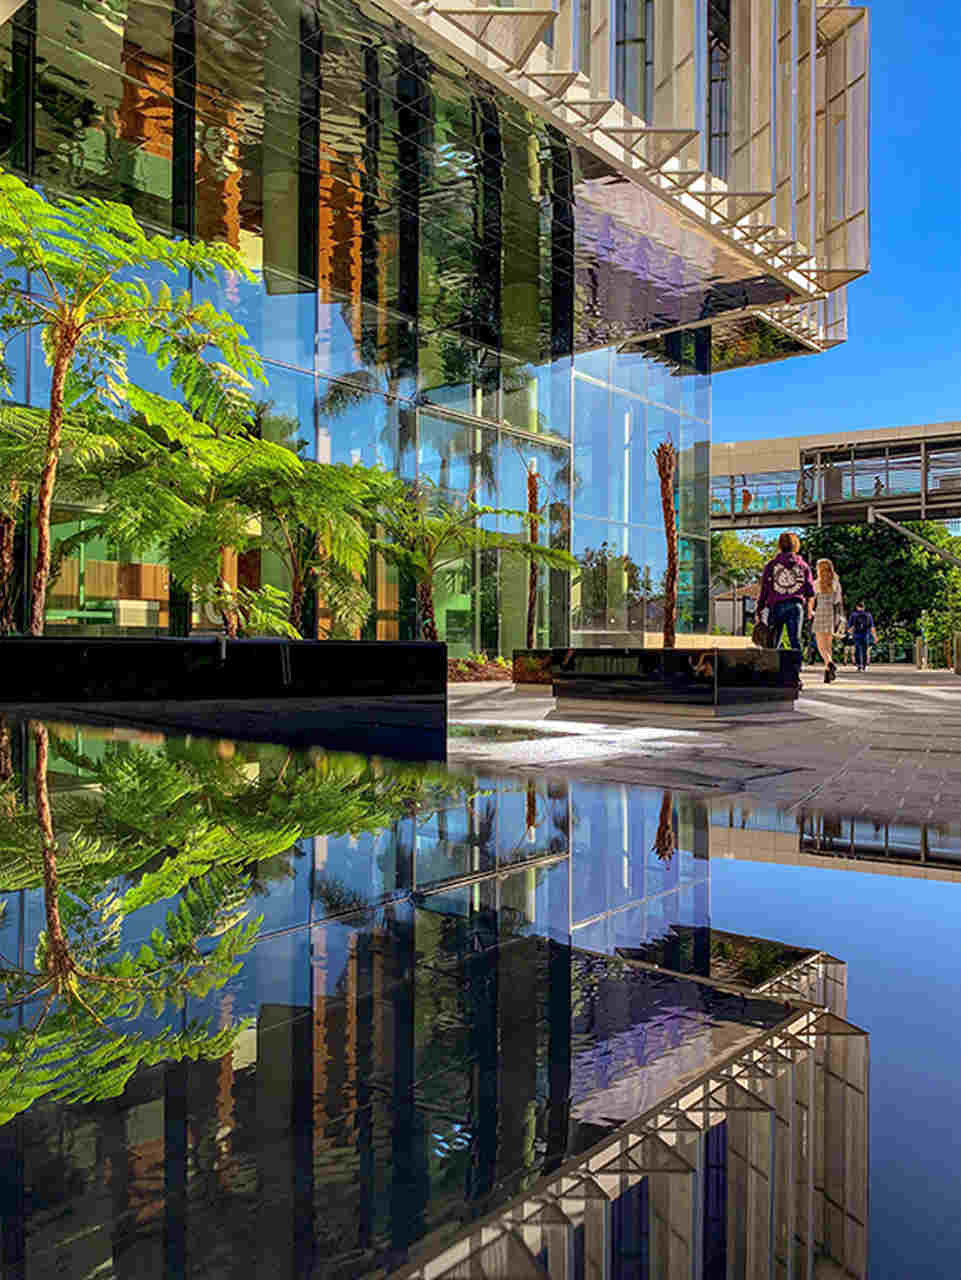 Reflection, Water, Architecture, Vegetation, Building, Landmark, Urban area, Daytime, Waterway, Mixed-use, City, Tree, Metropolitan area, Facade, Condominium, Reflecting pool, Metropolis, Real estate, House, Plant